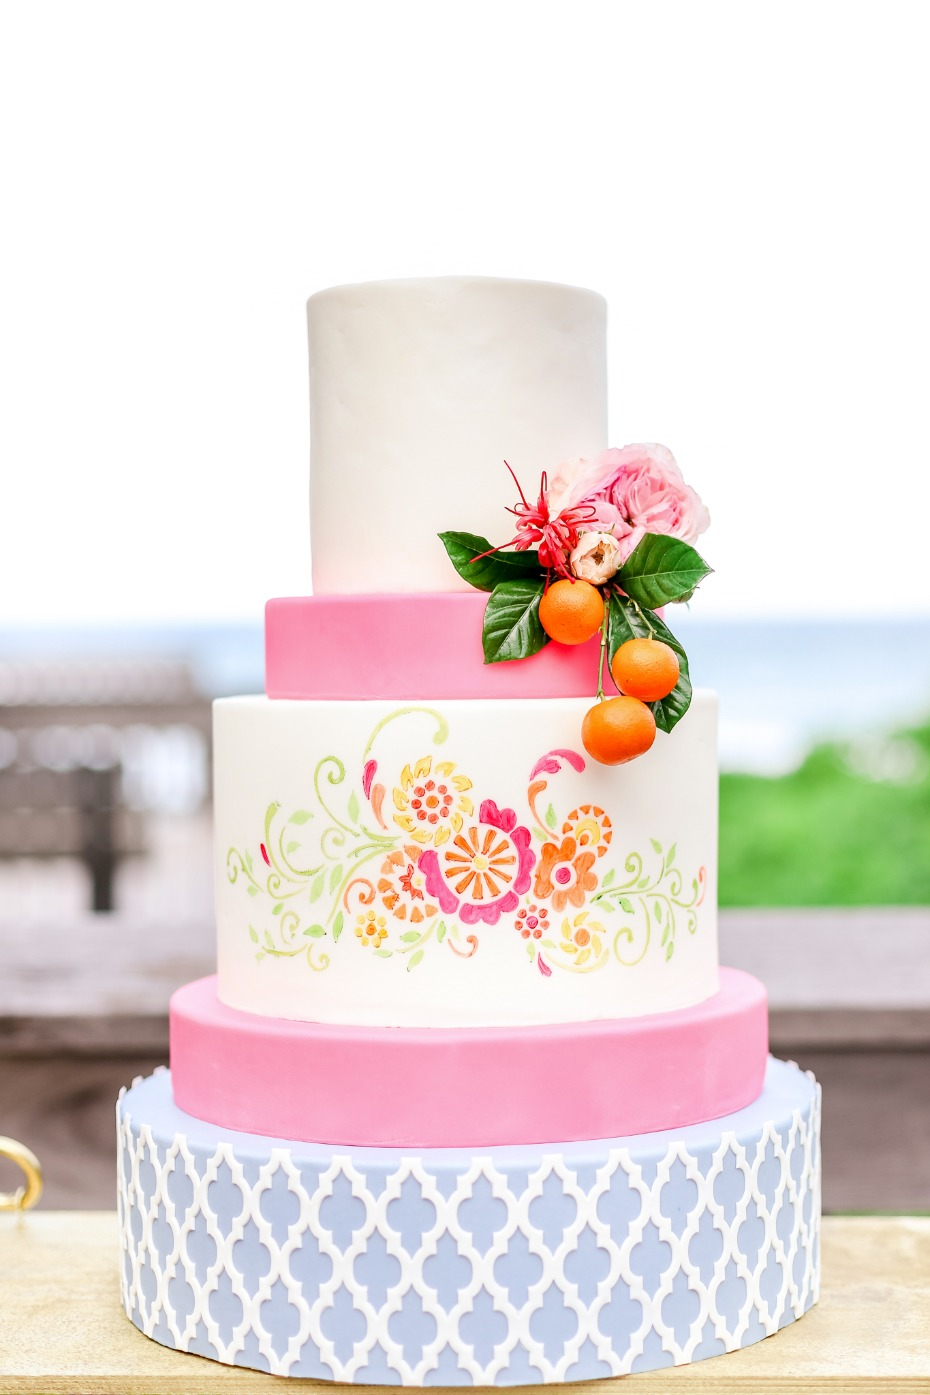 Bright and cheerful cake with pink, blue and white